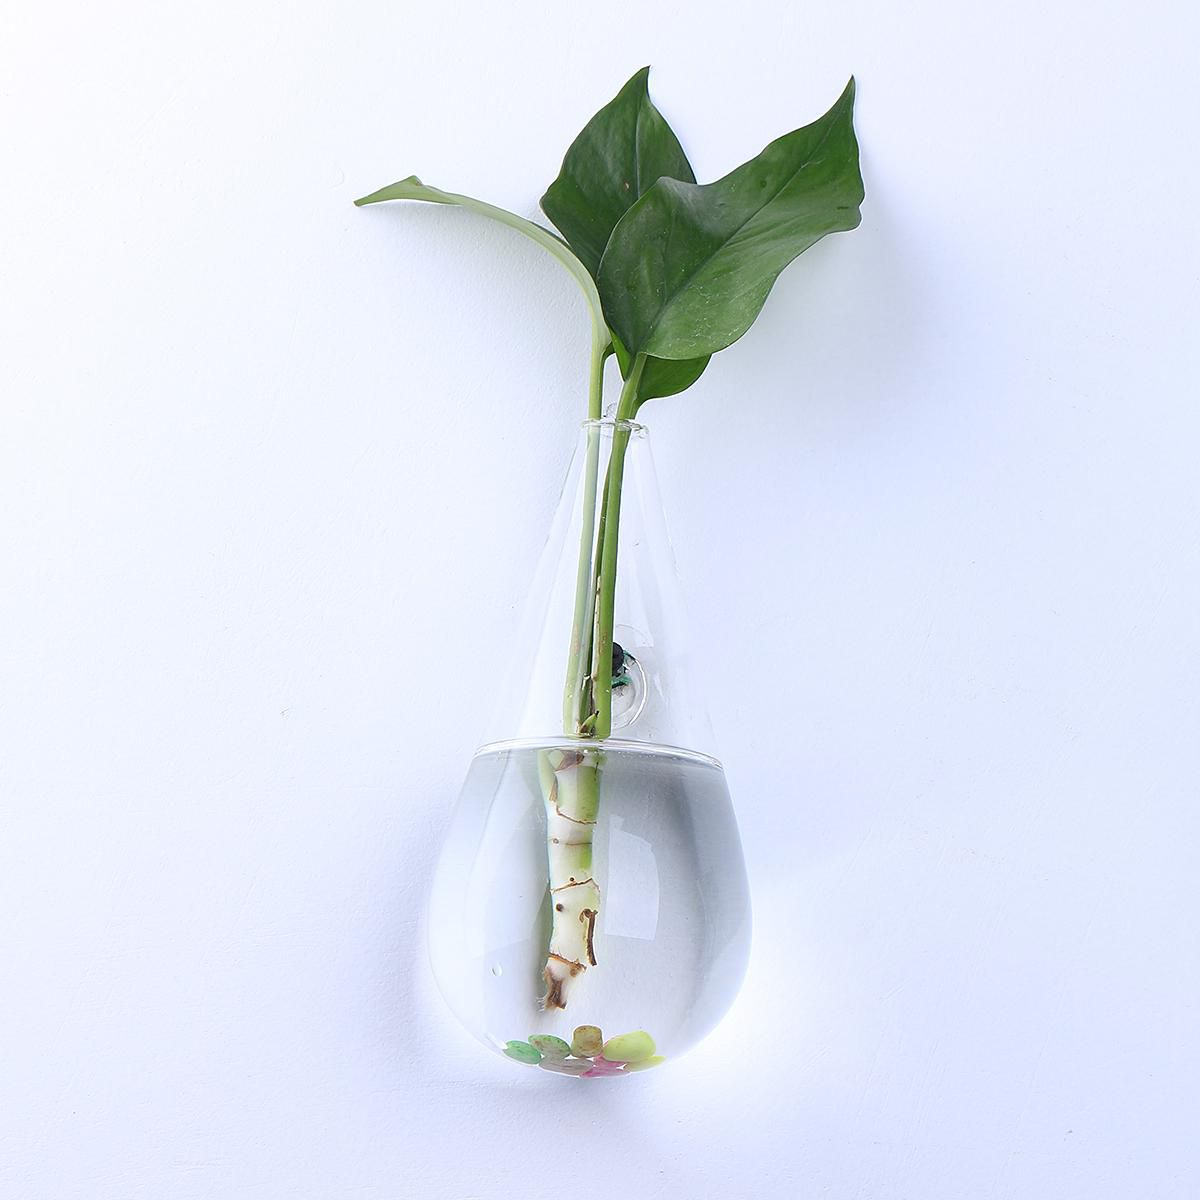 Irregular Wall Hanging Glass Planter Air Plant Terrarium Flower Pots Vase Garden Buy Irregular Wall Hanging Glass Planter Air Plant Terrarium Flower Pots Vase Garden Online At Low Price Snapdeal